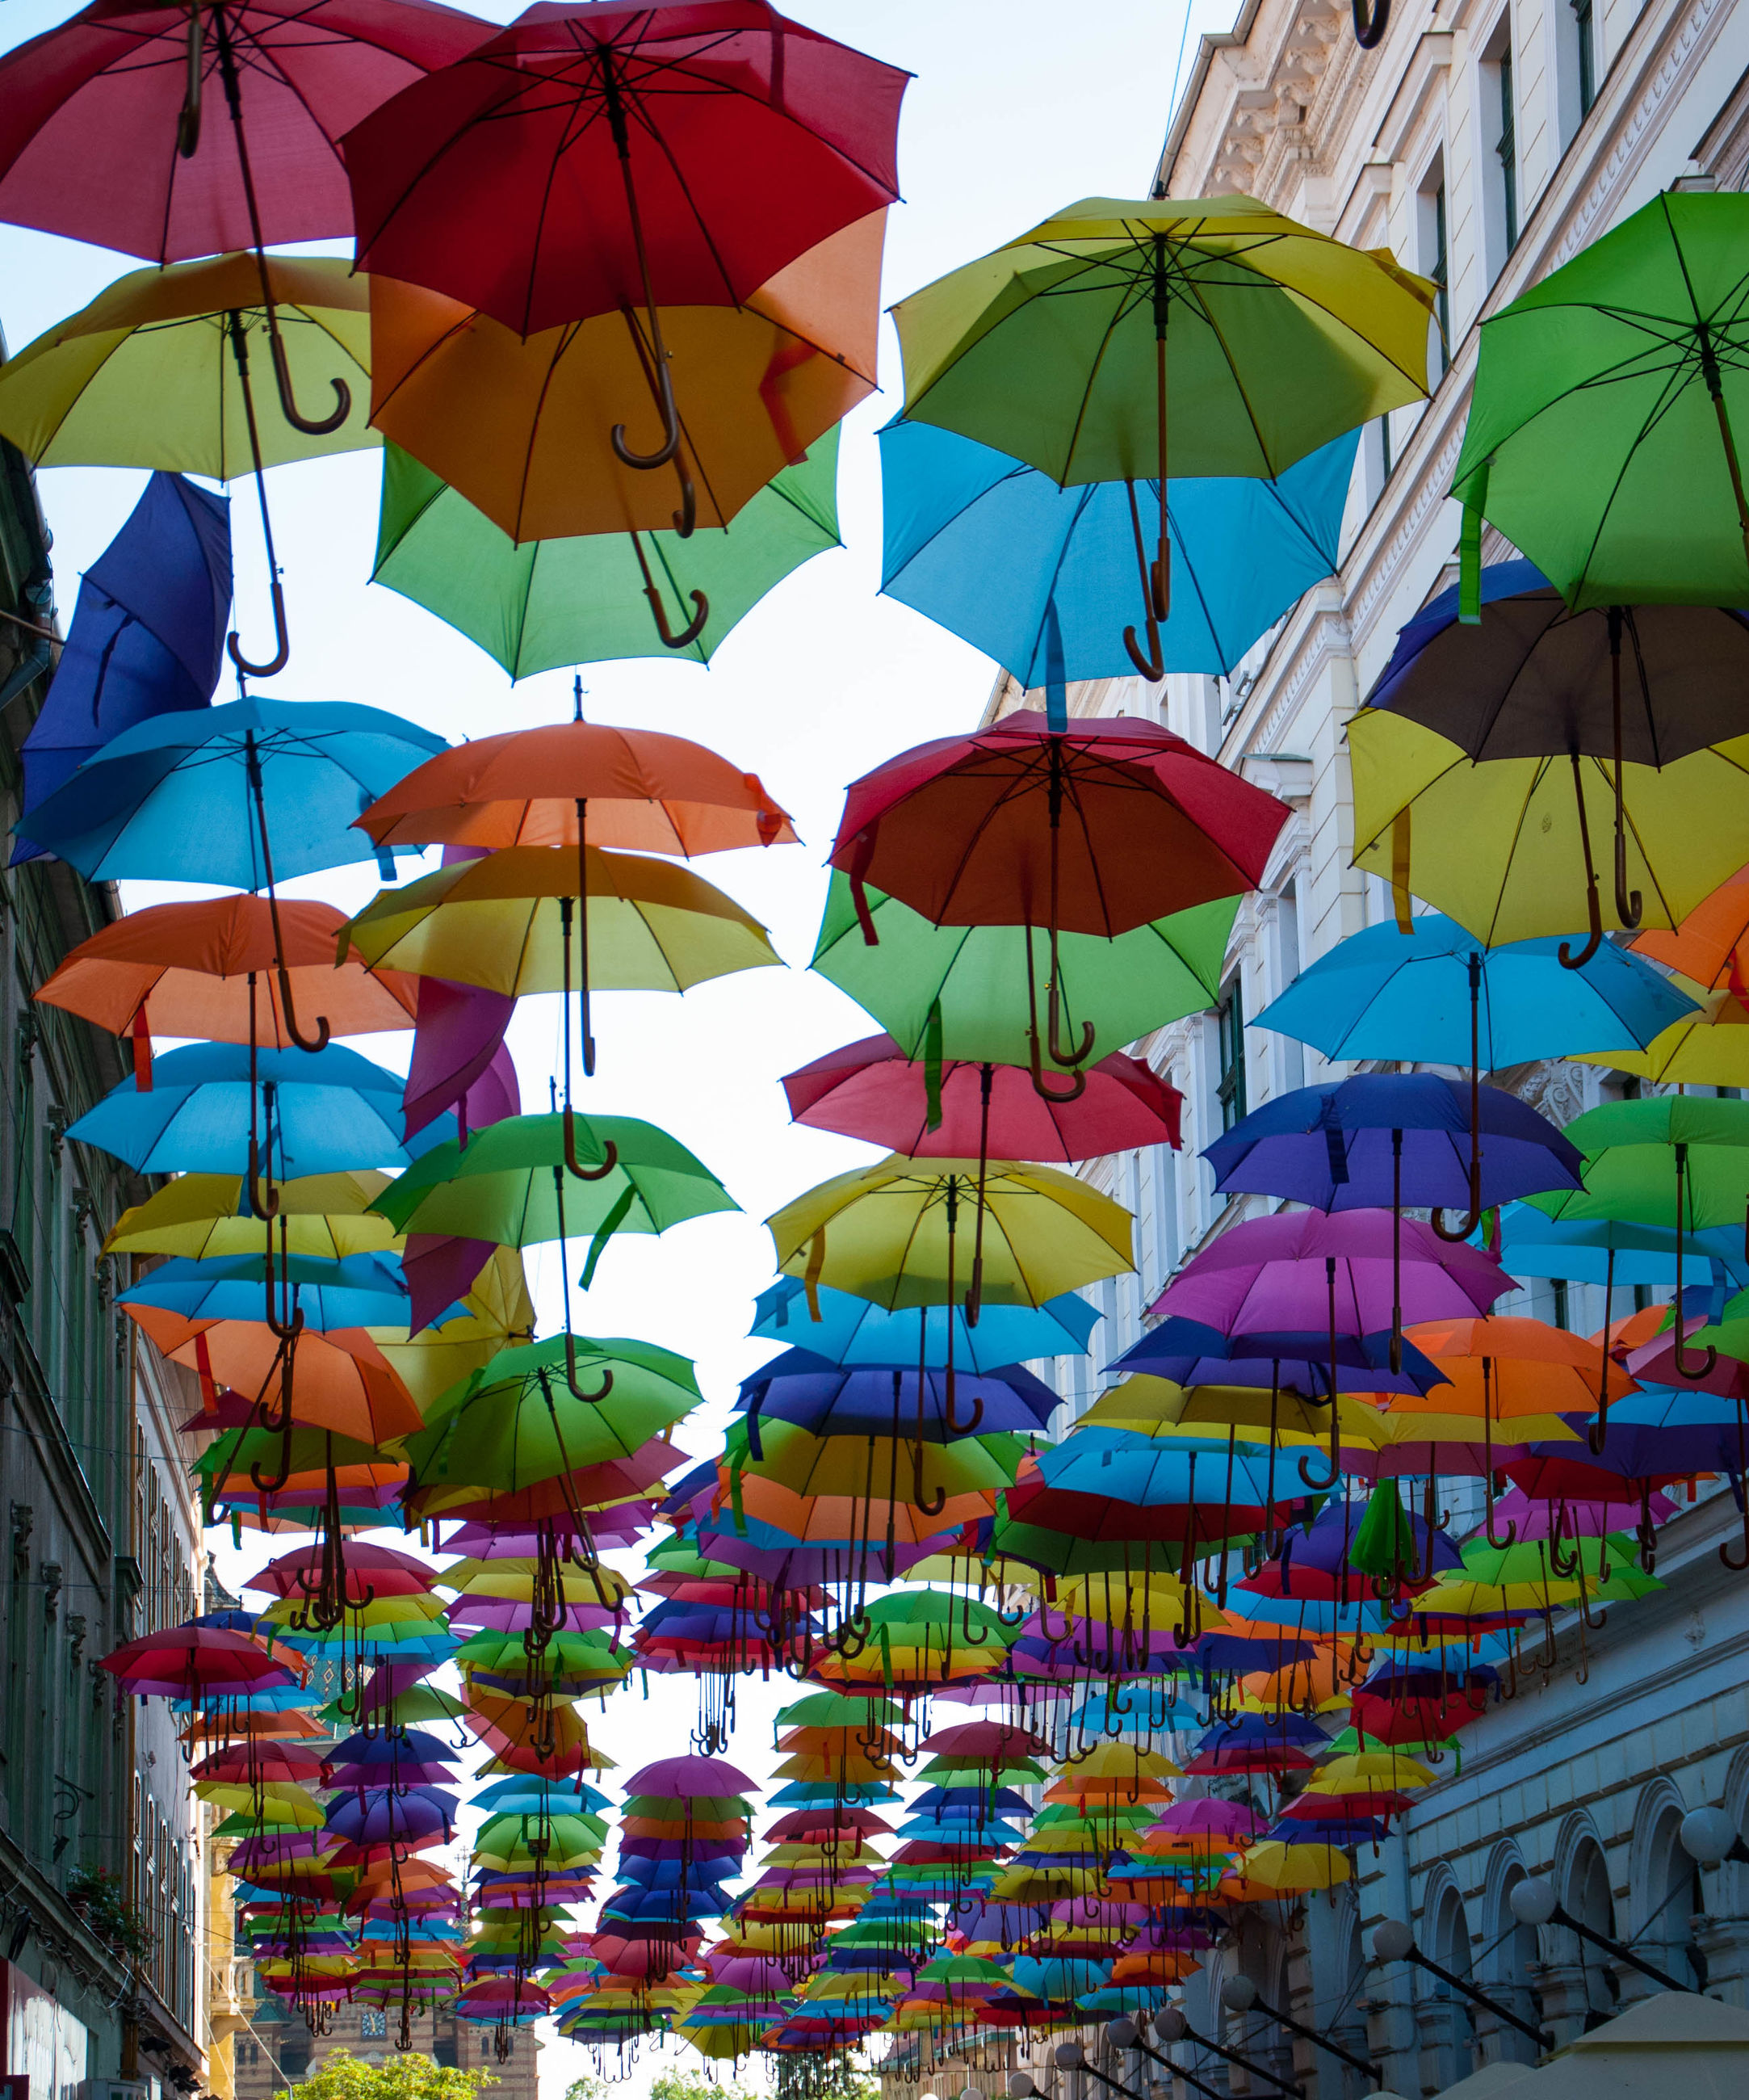 multi colored, umbrella, protection, hanging, low angle view, group of objects, large group of objects, variation, abundance, arrangement, sky, colorful, decoration, open, building exterior, choice, in a row, string, outdoors, day, repetition, medium group of objects, creativity, handing, bunch, retail, cloud - sky, arranged